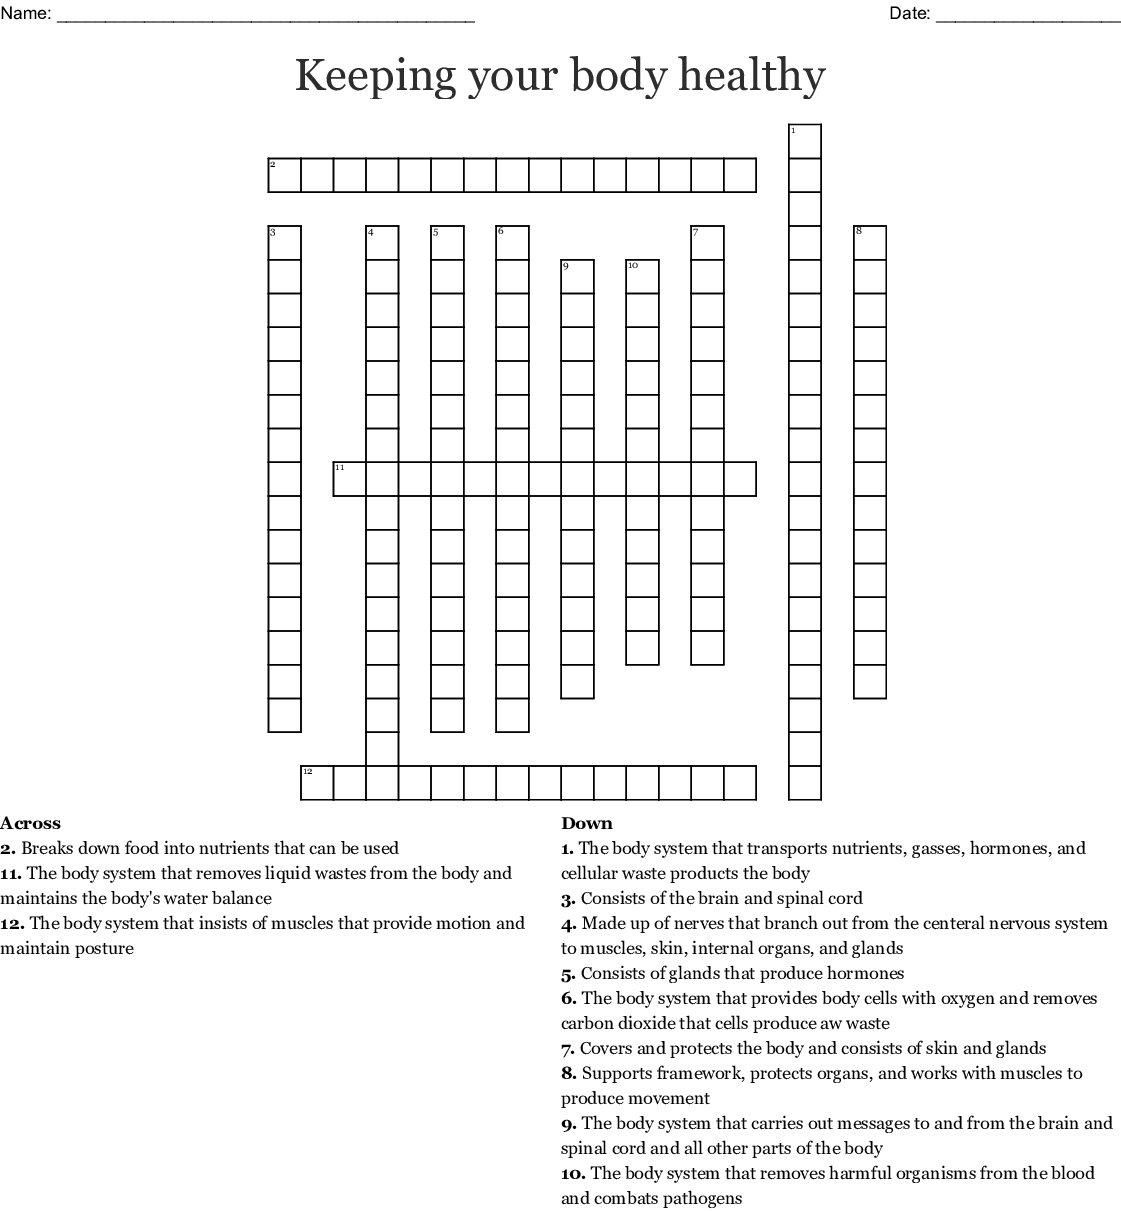 Keeping Your Body Healthy Crossword